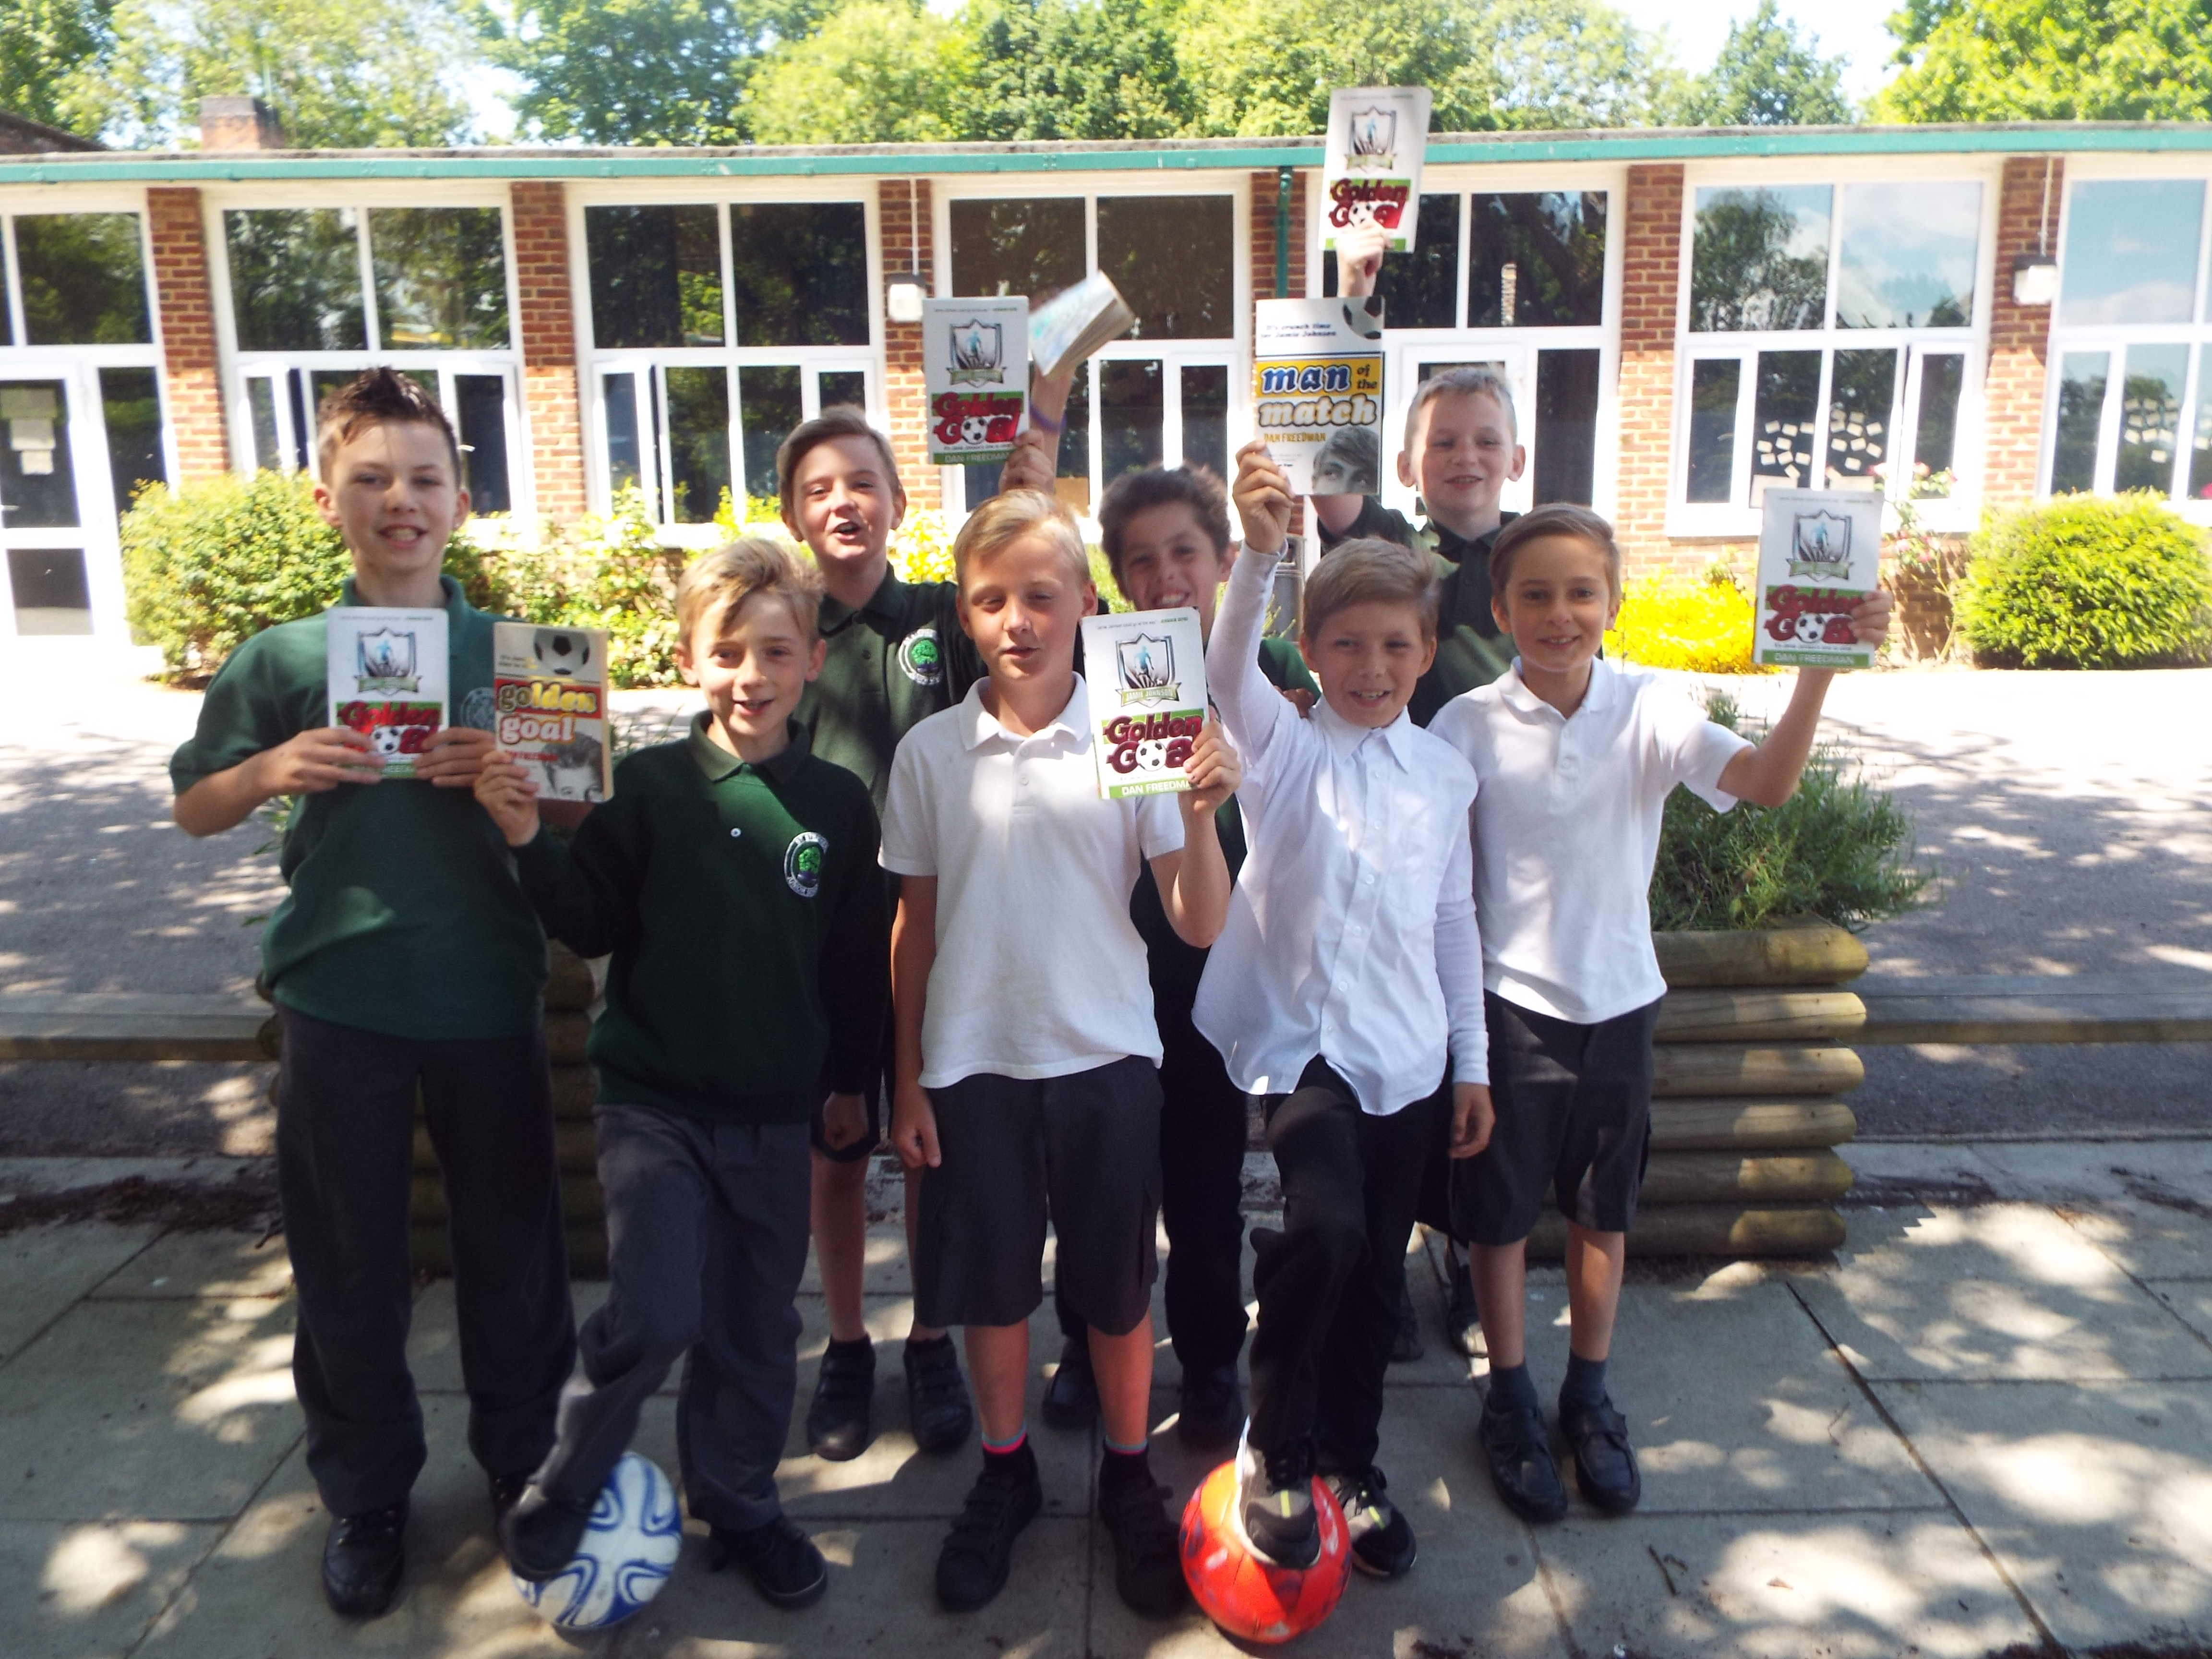 St Stephen's Junior School students with the Jamie Johnson books they are reading